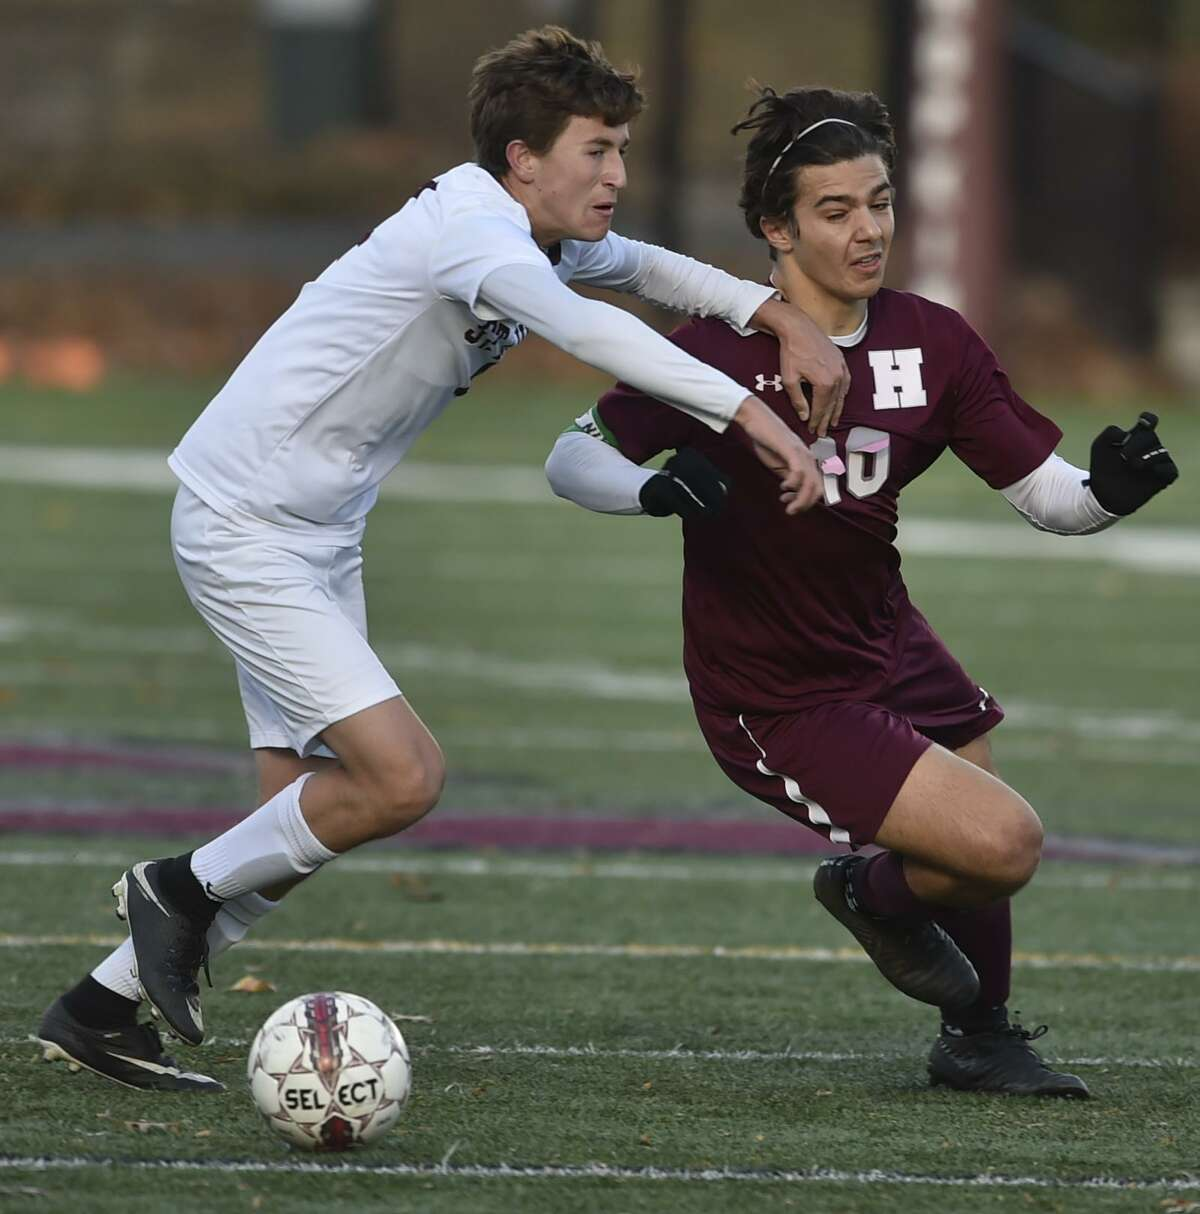 New Haven, Connecticut, November 10, 2018: First-half action during the Hopkins School vs. St. Luke's in the Fairchester League boys soccer tournament final Saturday at Hopkins. Hopkins defeated St. Luke's 4-0.